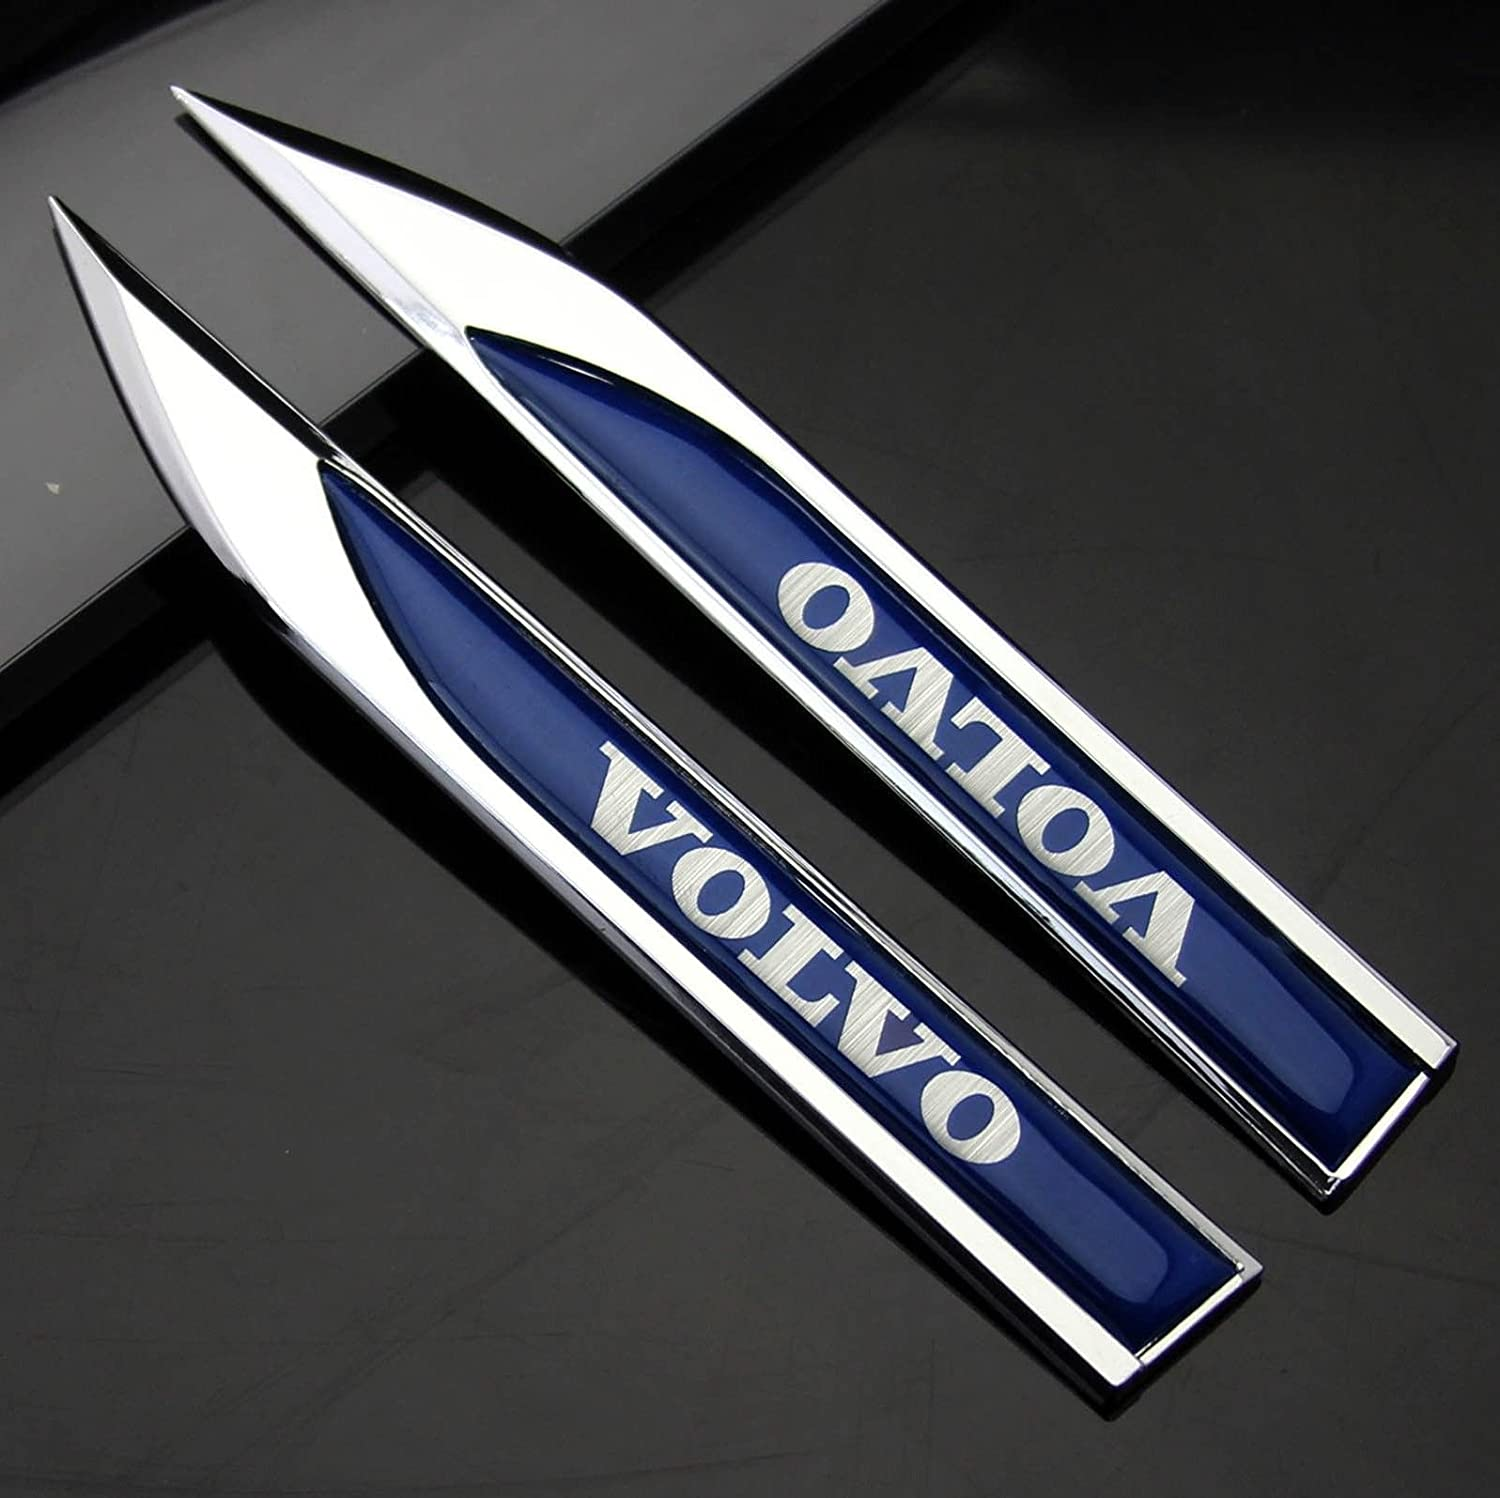 Incognito 7 2 pcs 3d laxury volvo logo volvo badge volvo body side emblems volvo stickers volvo emblem volvo dagger for all volvo cars amazon in car